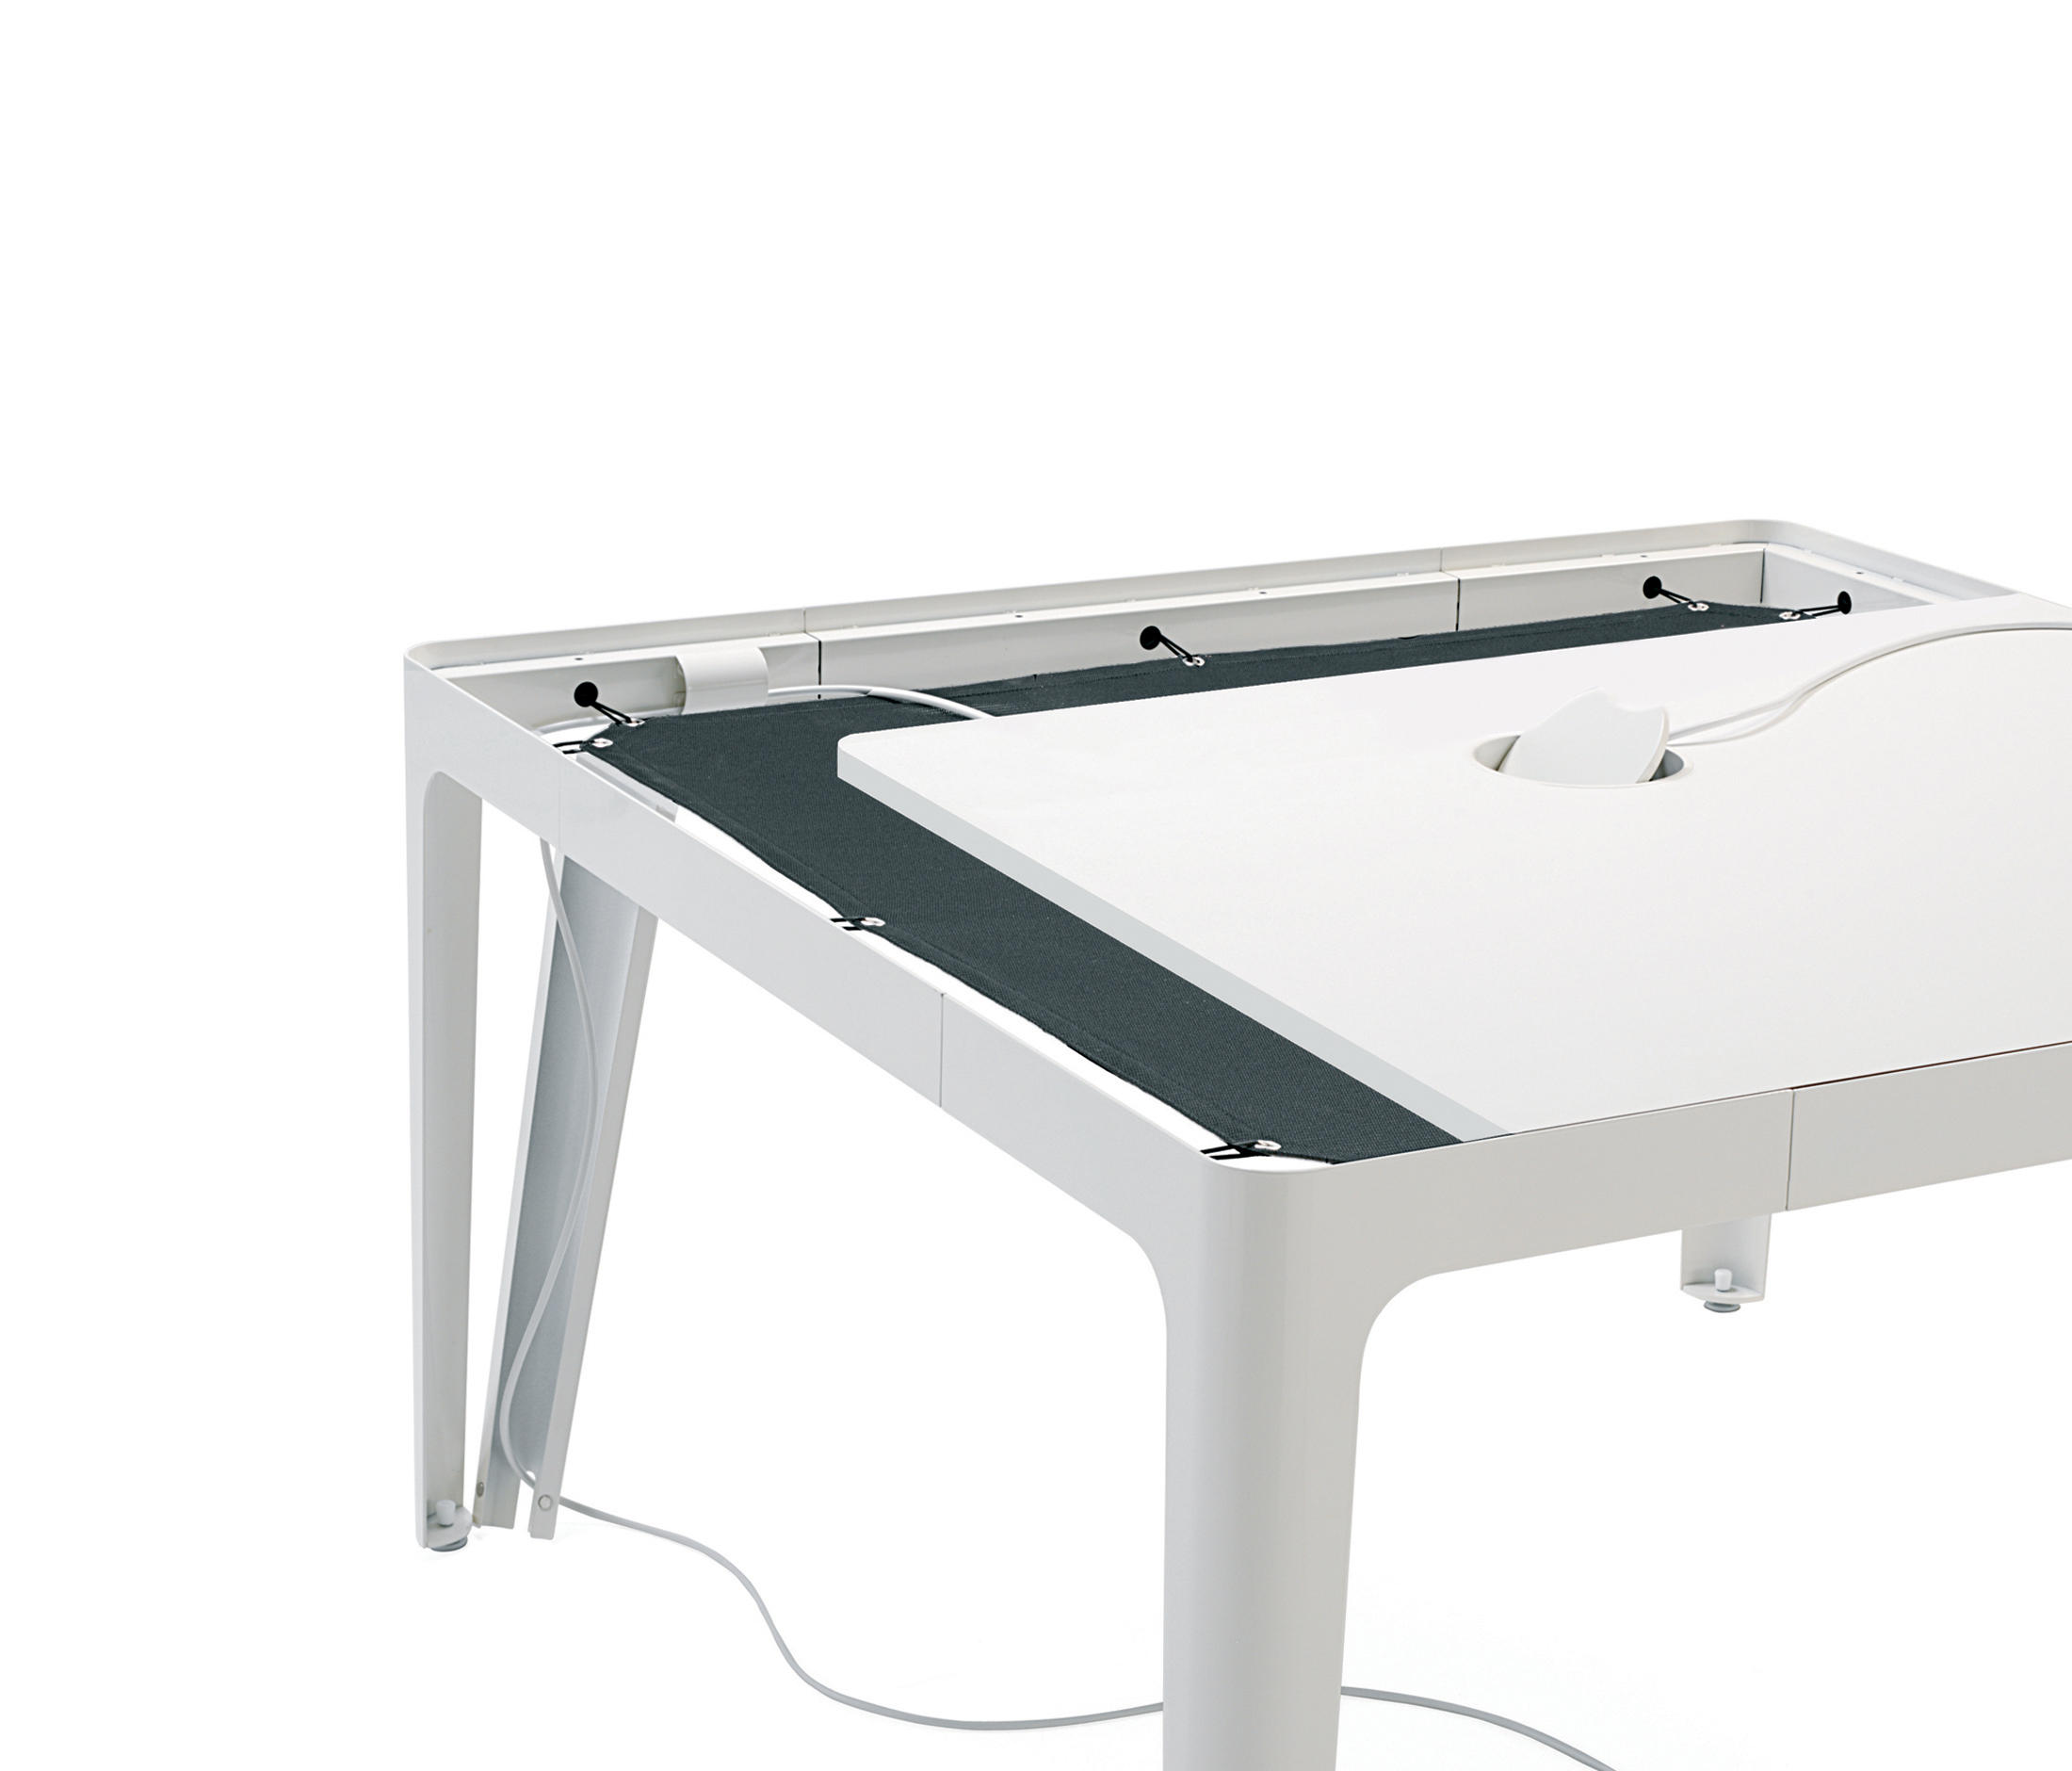 AVA CONFERENCE TABLE Desking systems from Materia